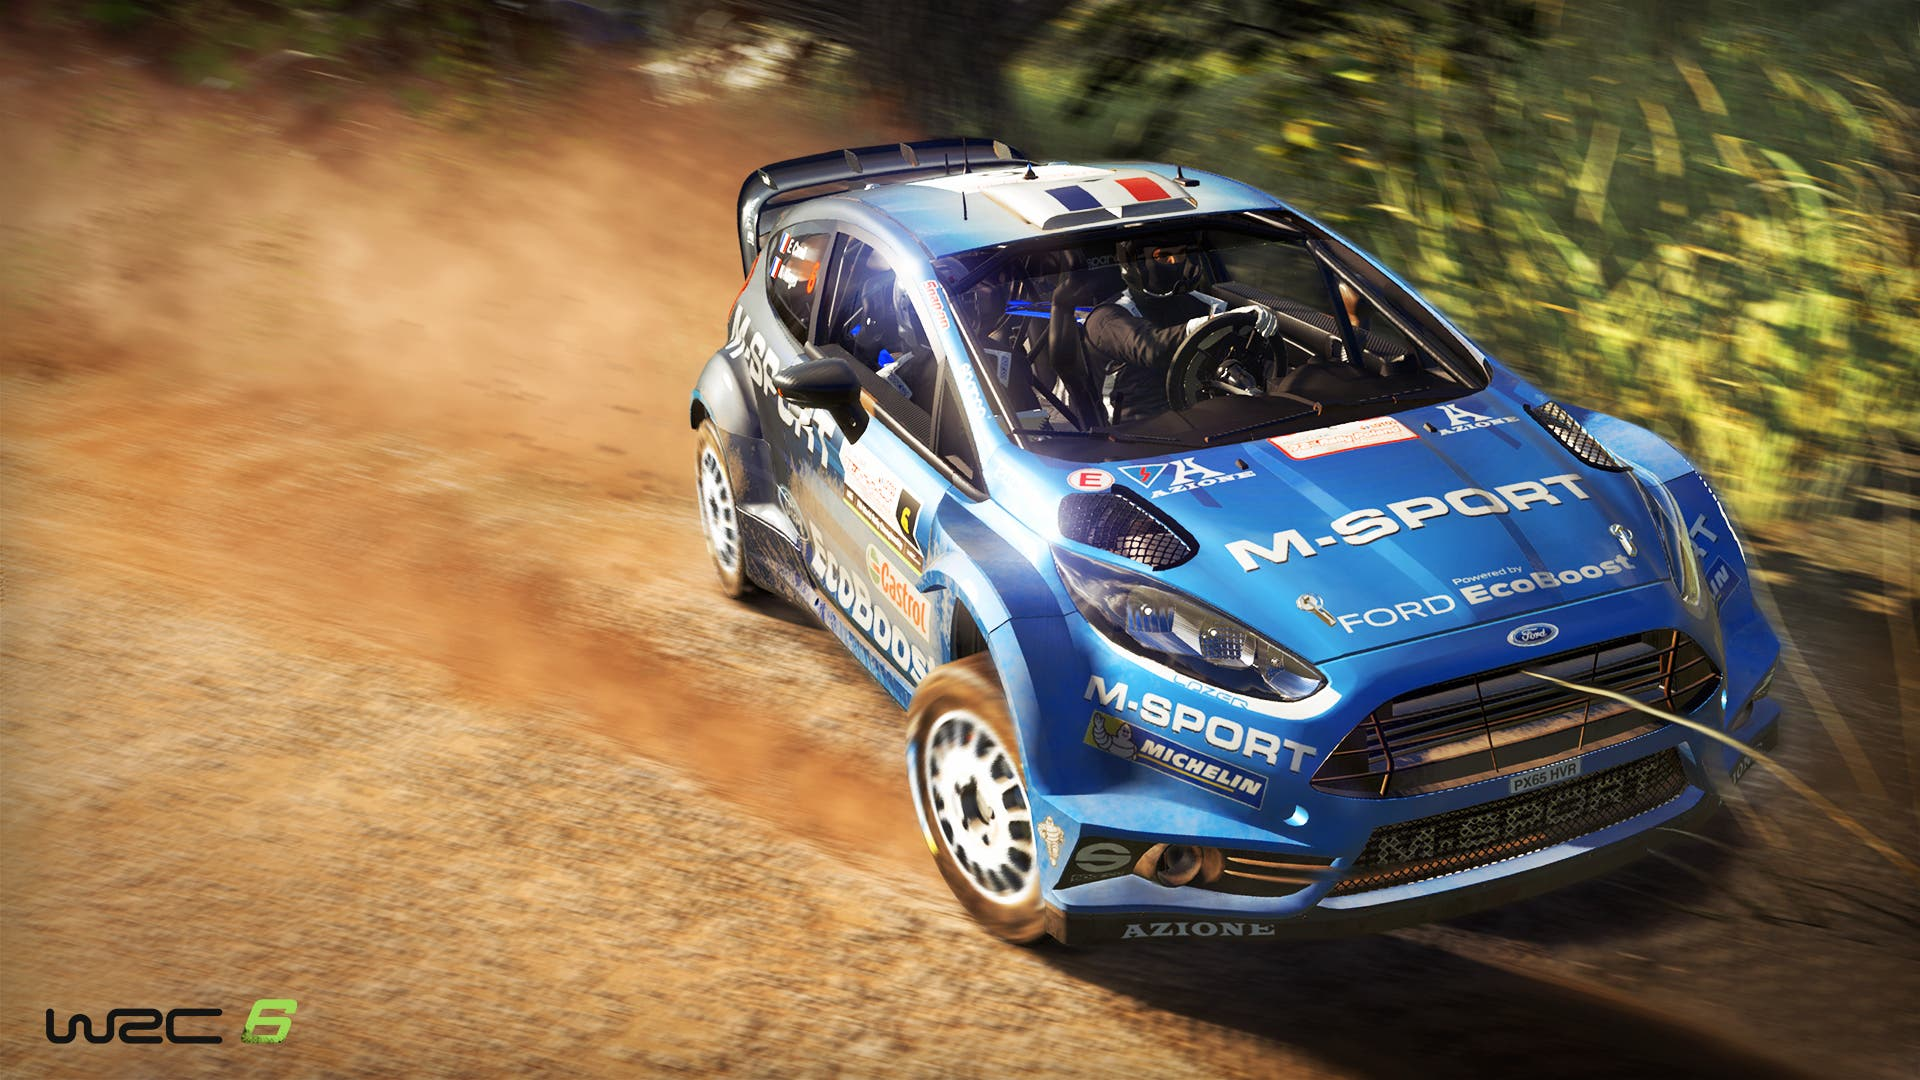 Wrc 6 Review Saving Content Sony Ps4 Fia World Rally Championship Is However An Authentic Game That Provides A Solid Experience Rising In The Racing